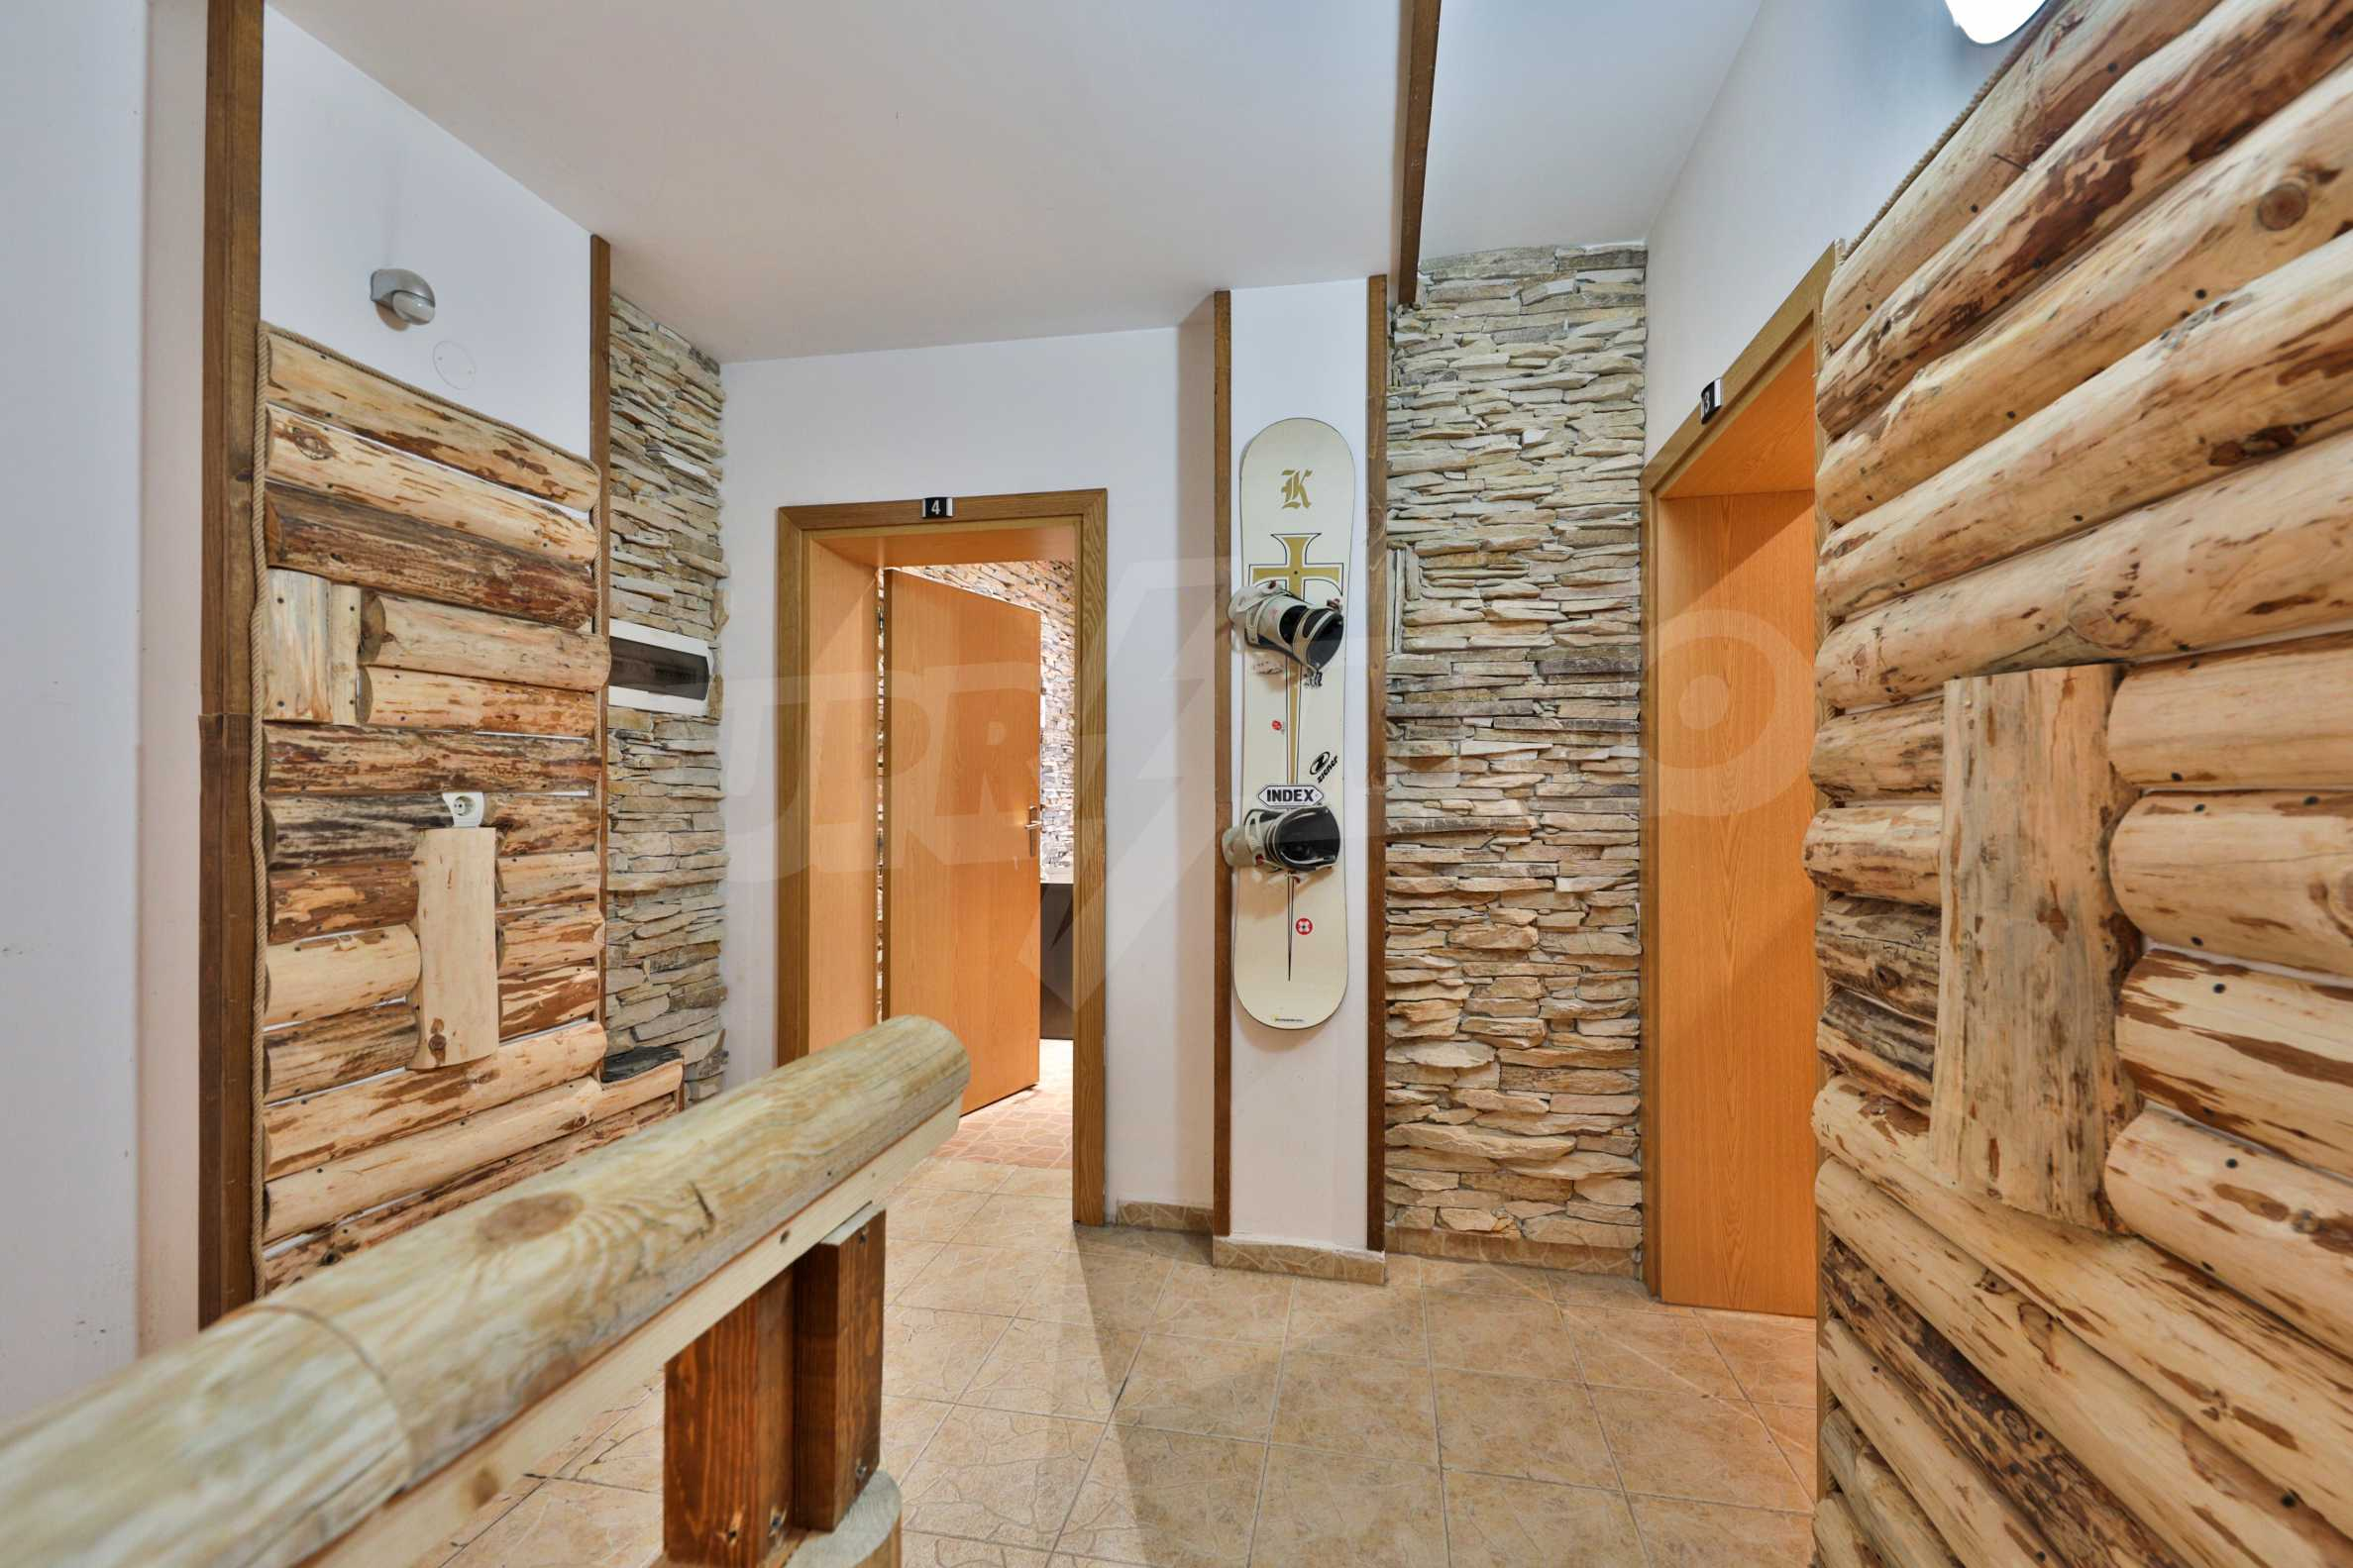 Pirin Apartments: Superb location right in the centre of Bansko 5